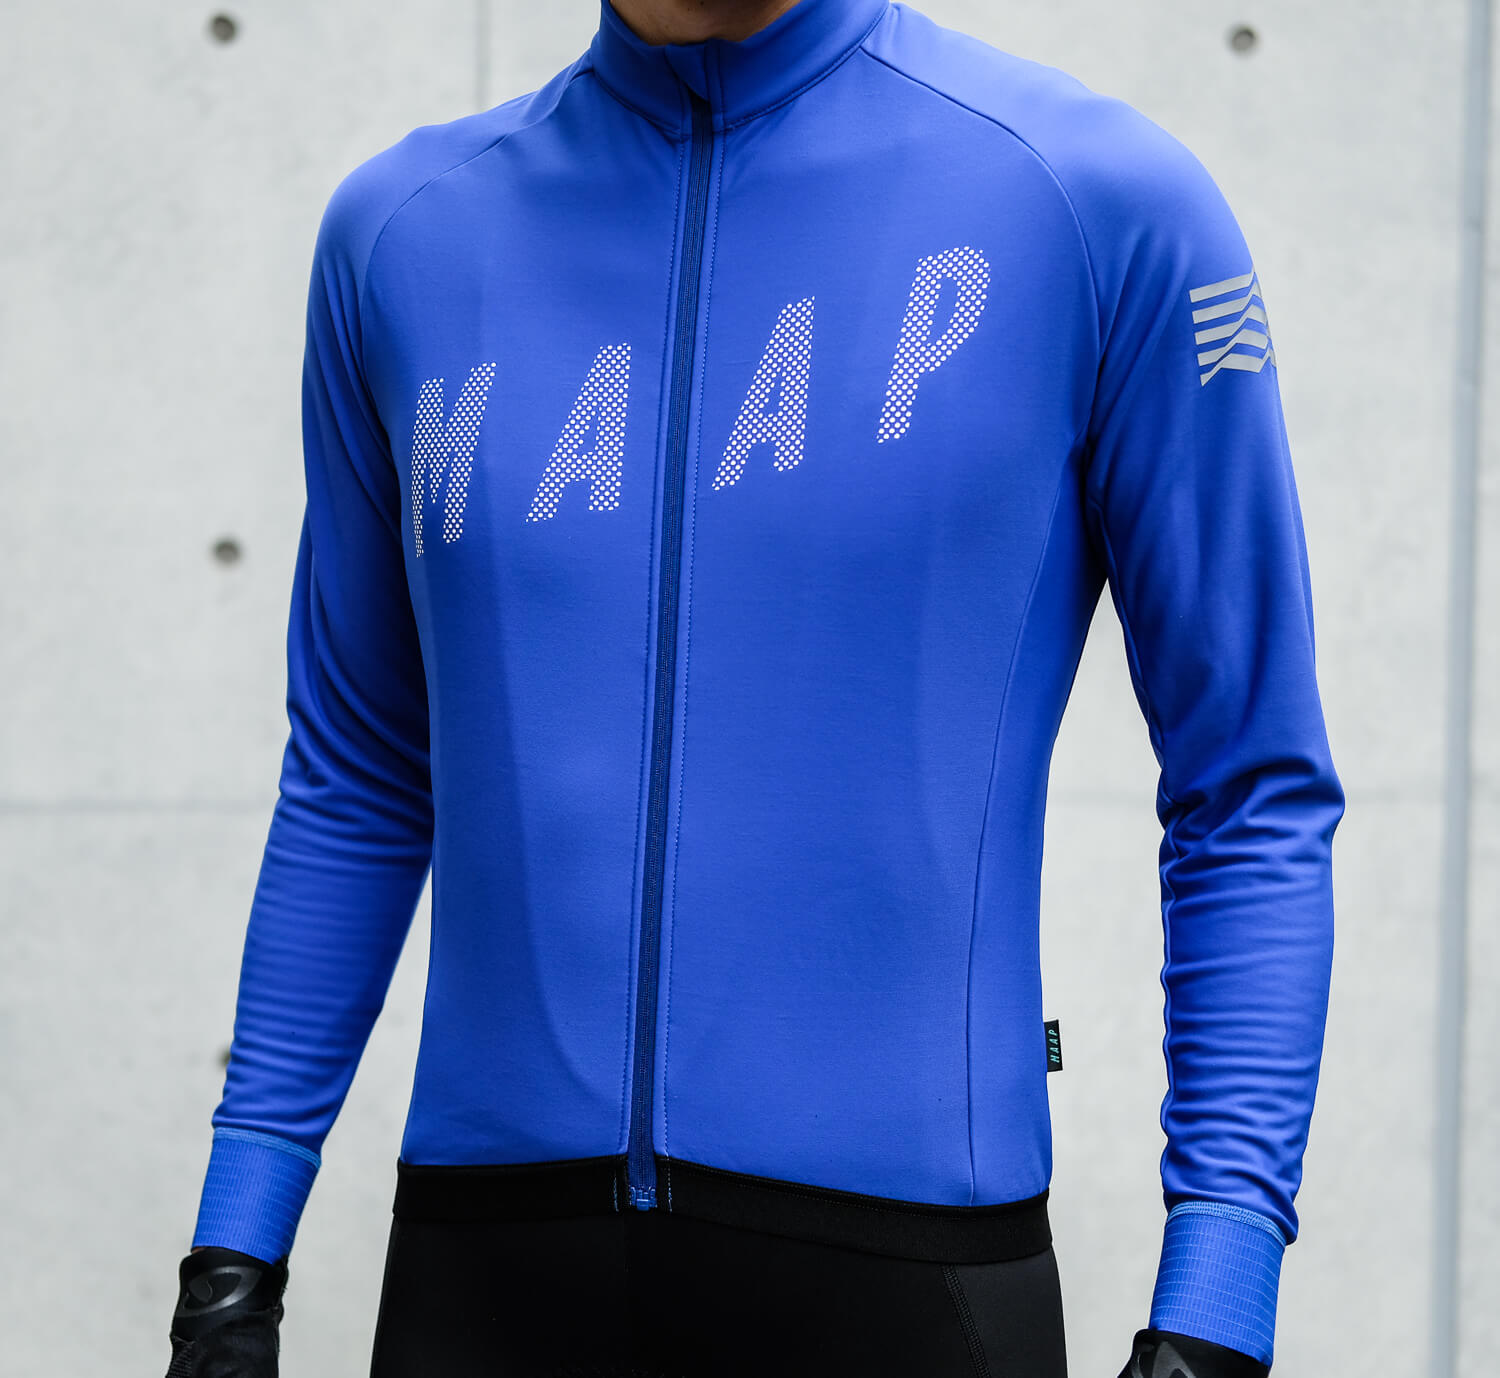 MAAP Escape Pro Winter Jersey Front